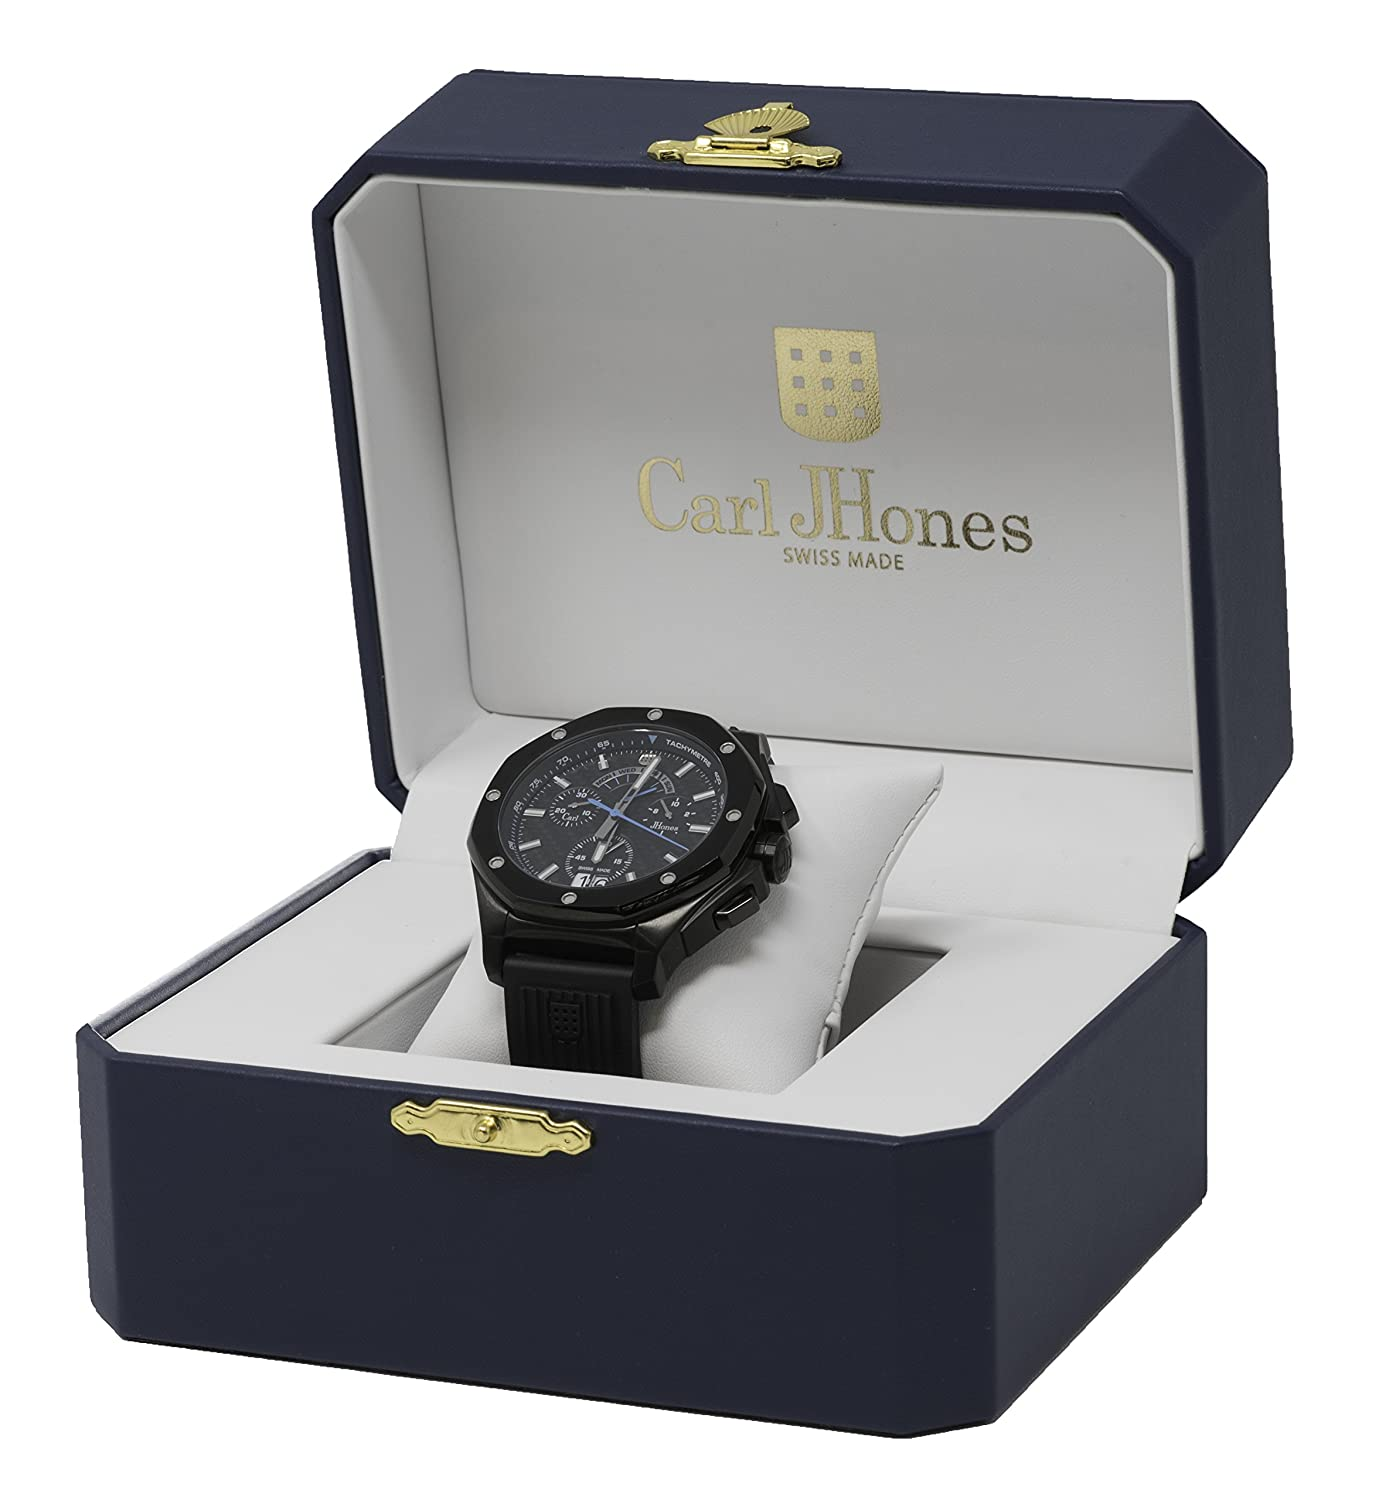 Amazon.com: Carl JHones Mens Respire Blue Carbon Fiber Swiss Quartz Watch 46MM: Watches